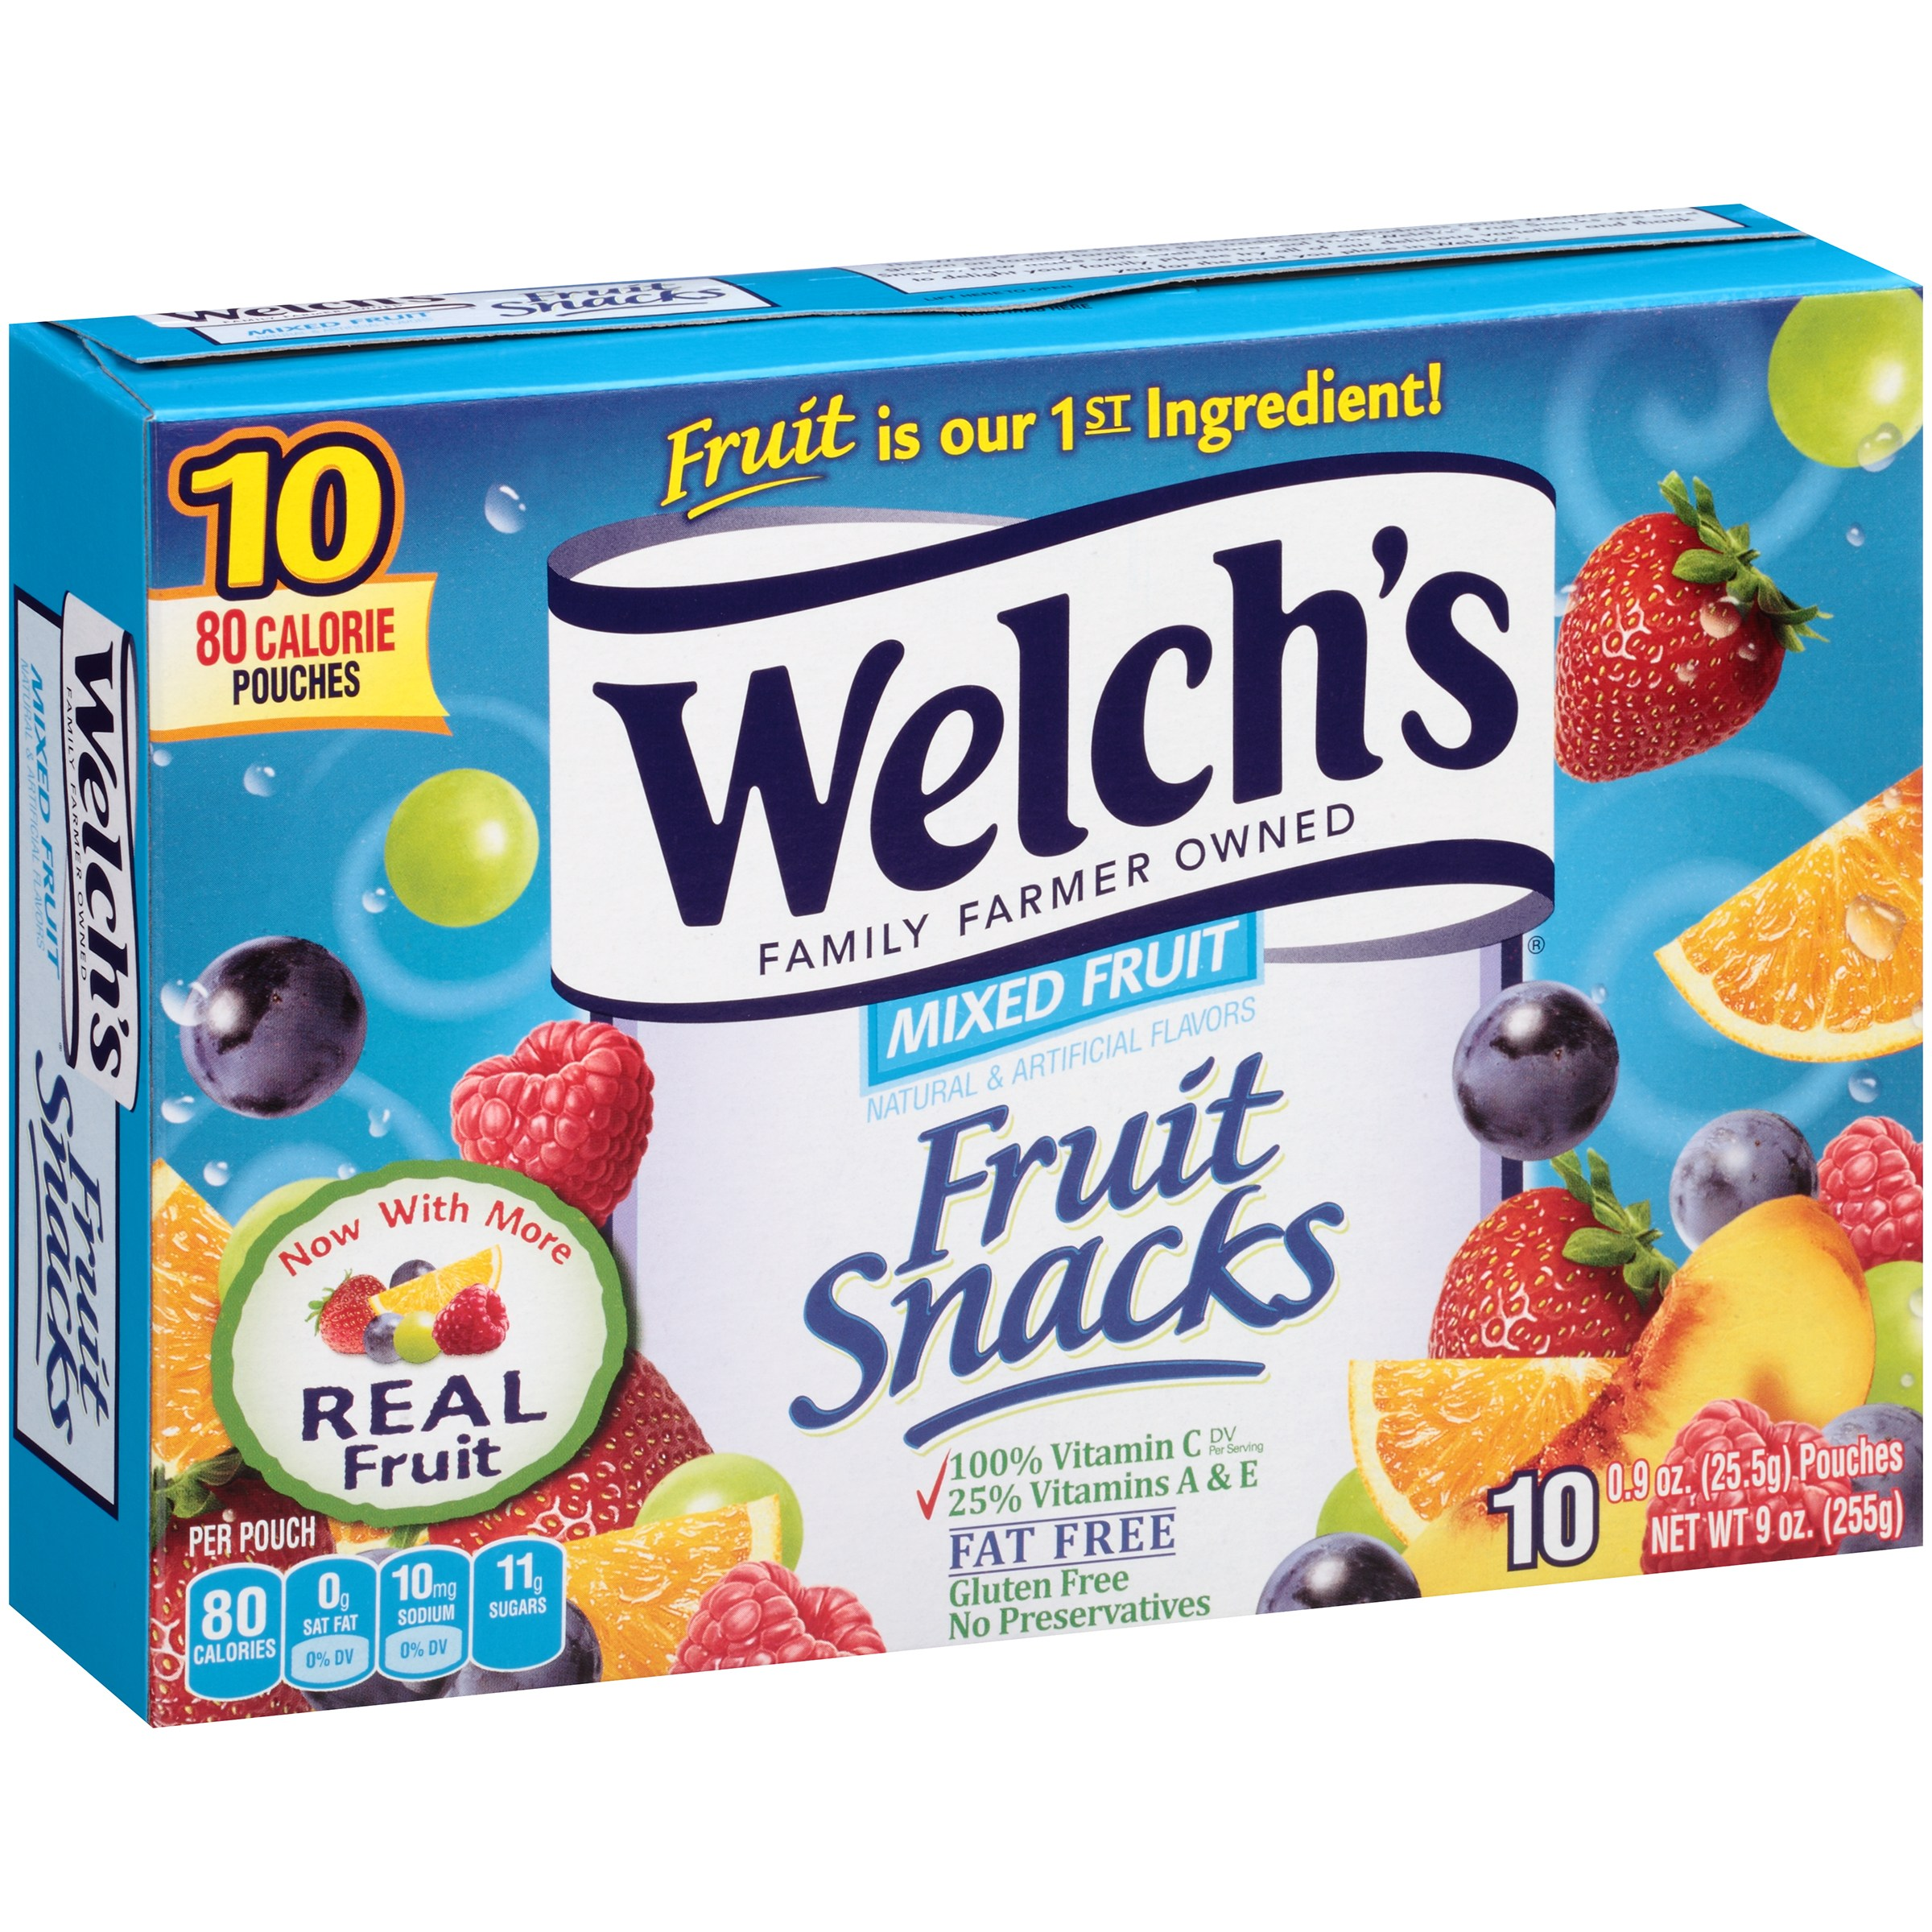 Welch's Fruit Snacks (mixed fruit)